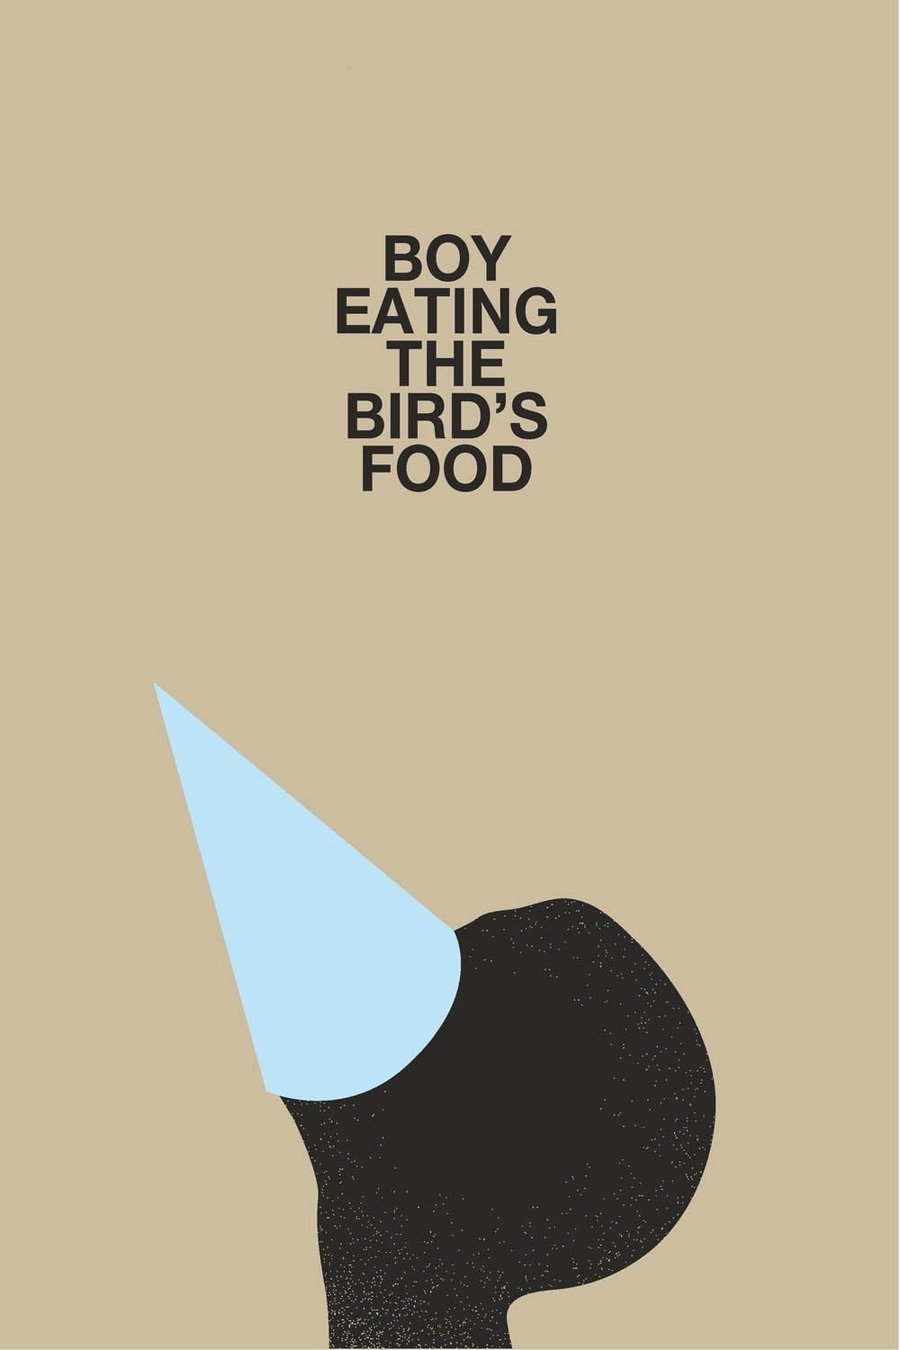 Boy Eating the Bird's Food